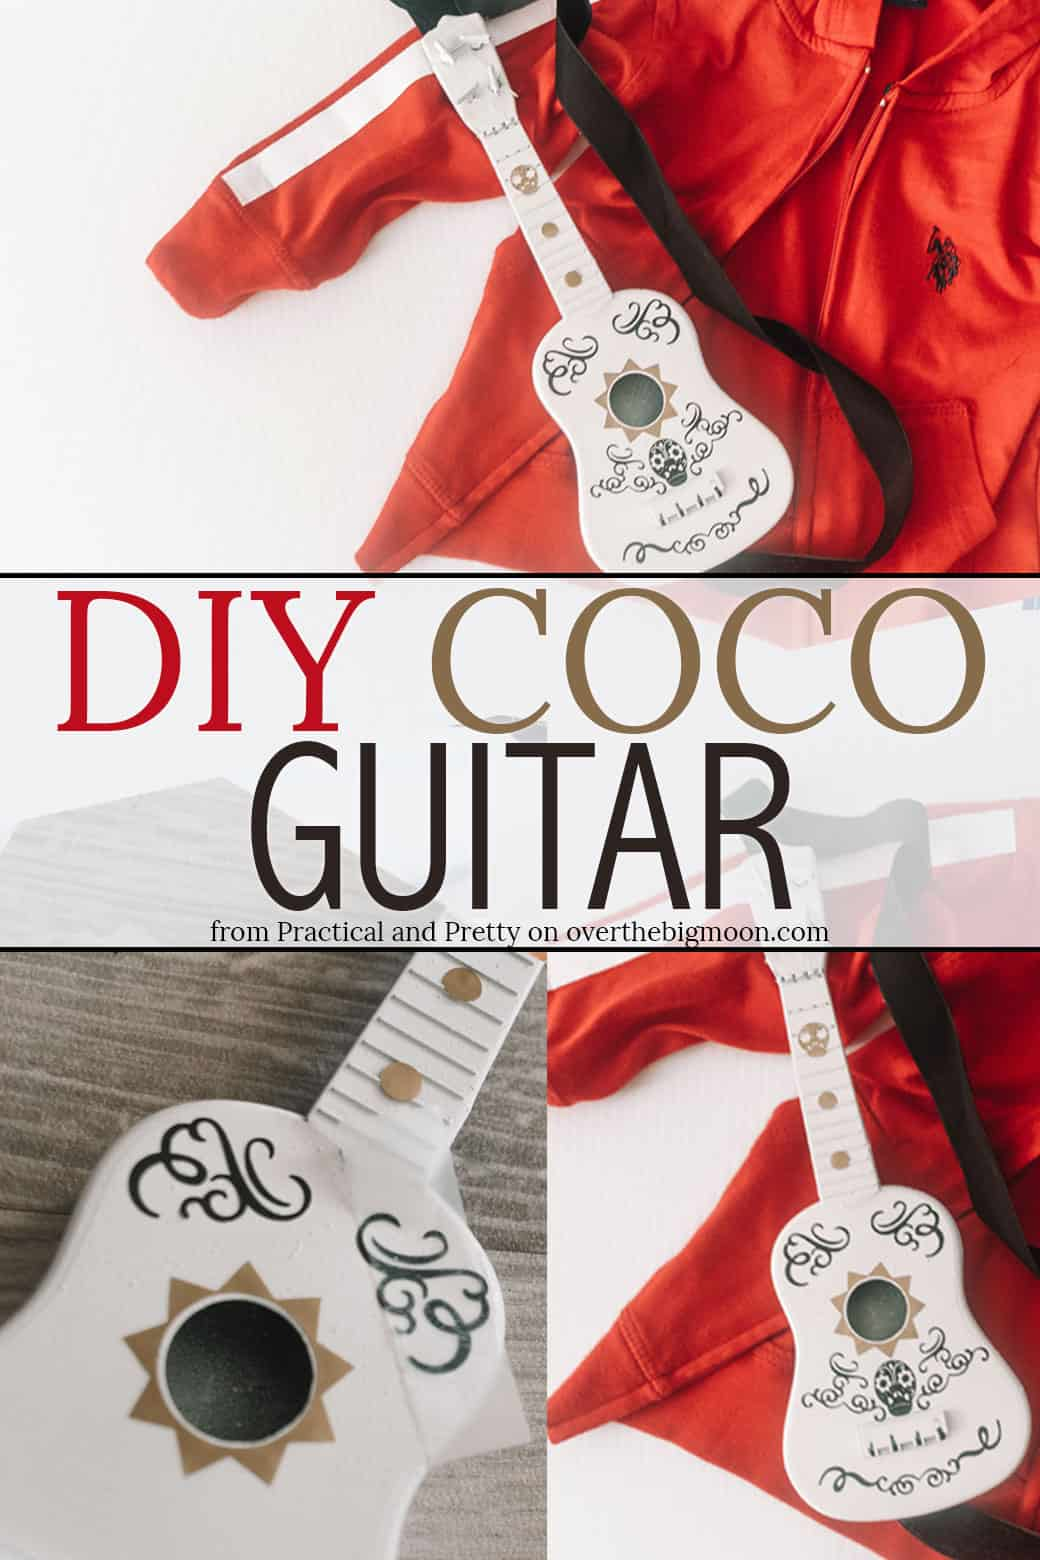 DIY Coco Guitar Tutorial - perfect for a Coco costume or play! Design by Practical and Pretty on overthebigmoon.com!